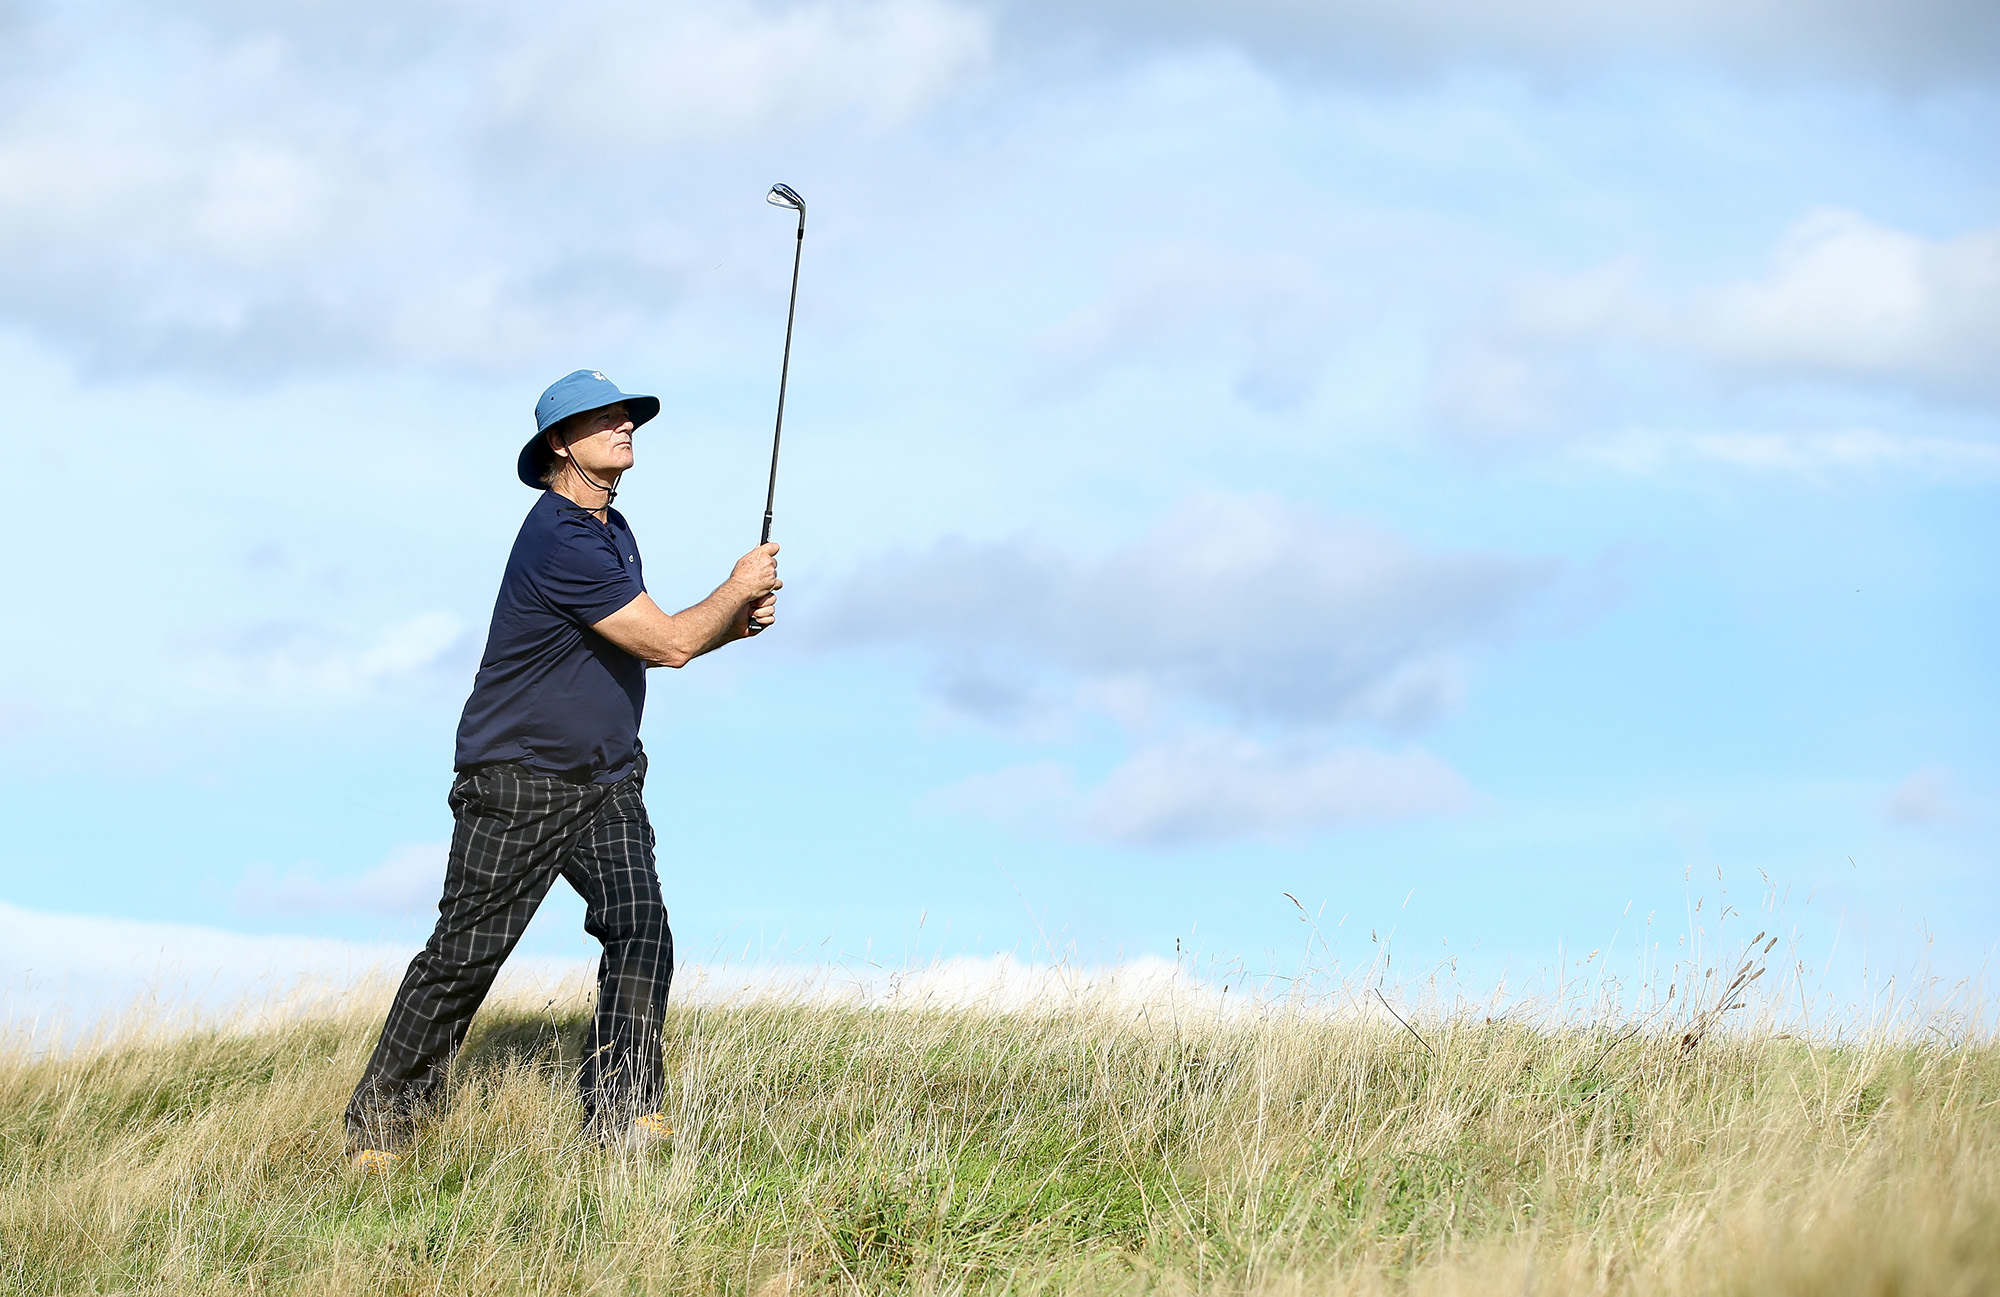 ST ANDREWS, SCOTLAND - SEPTEMBER 30: Hollywood star Bill Murray in action during the practice round prior to the 2014 Alfred Dunhill Links Championship at The Old Course on September 30, 2014 in St Andrews, Scotland. (Photo by Richard Heathcote/Getty Images) *** Local Caption *** Bill Murray